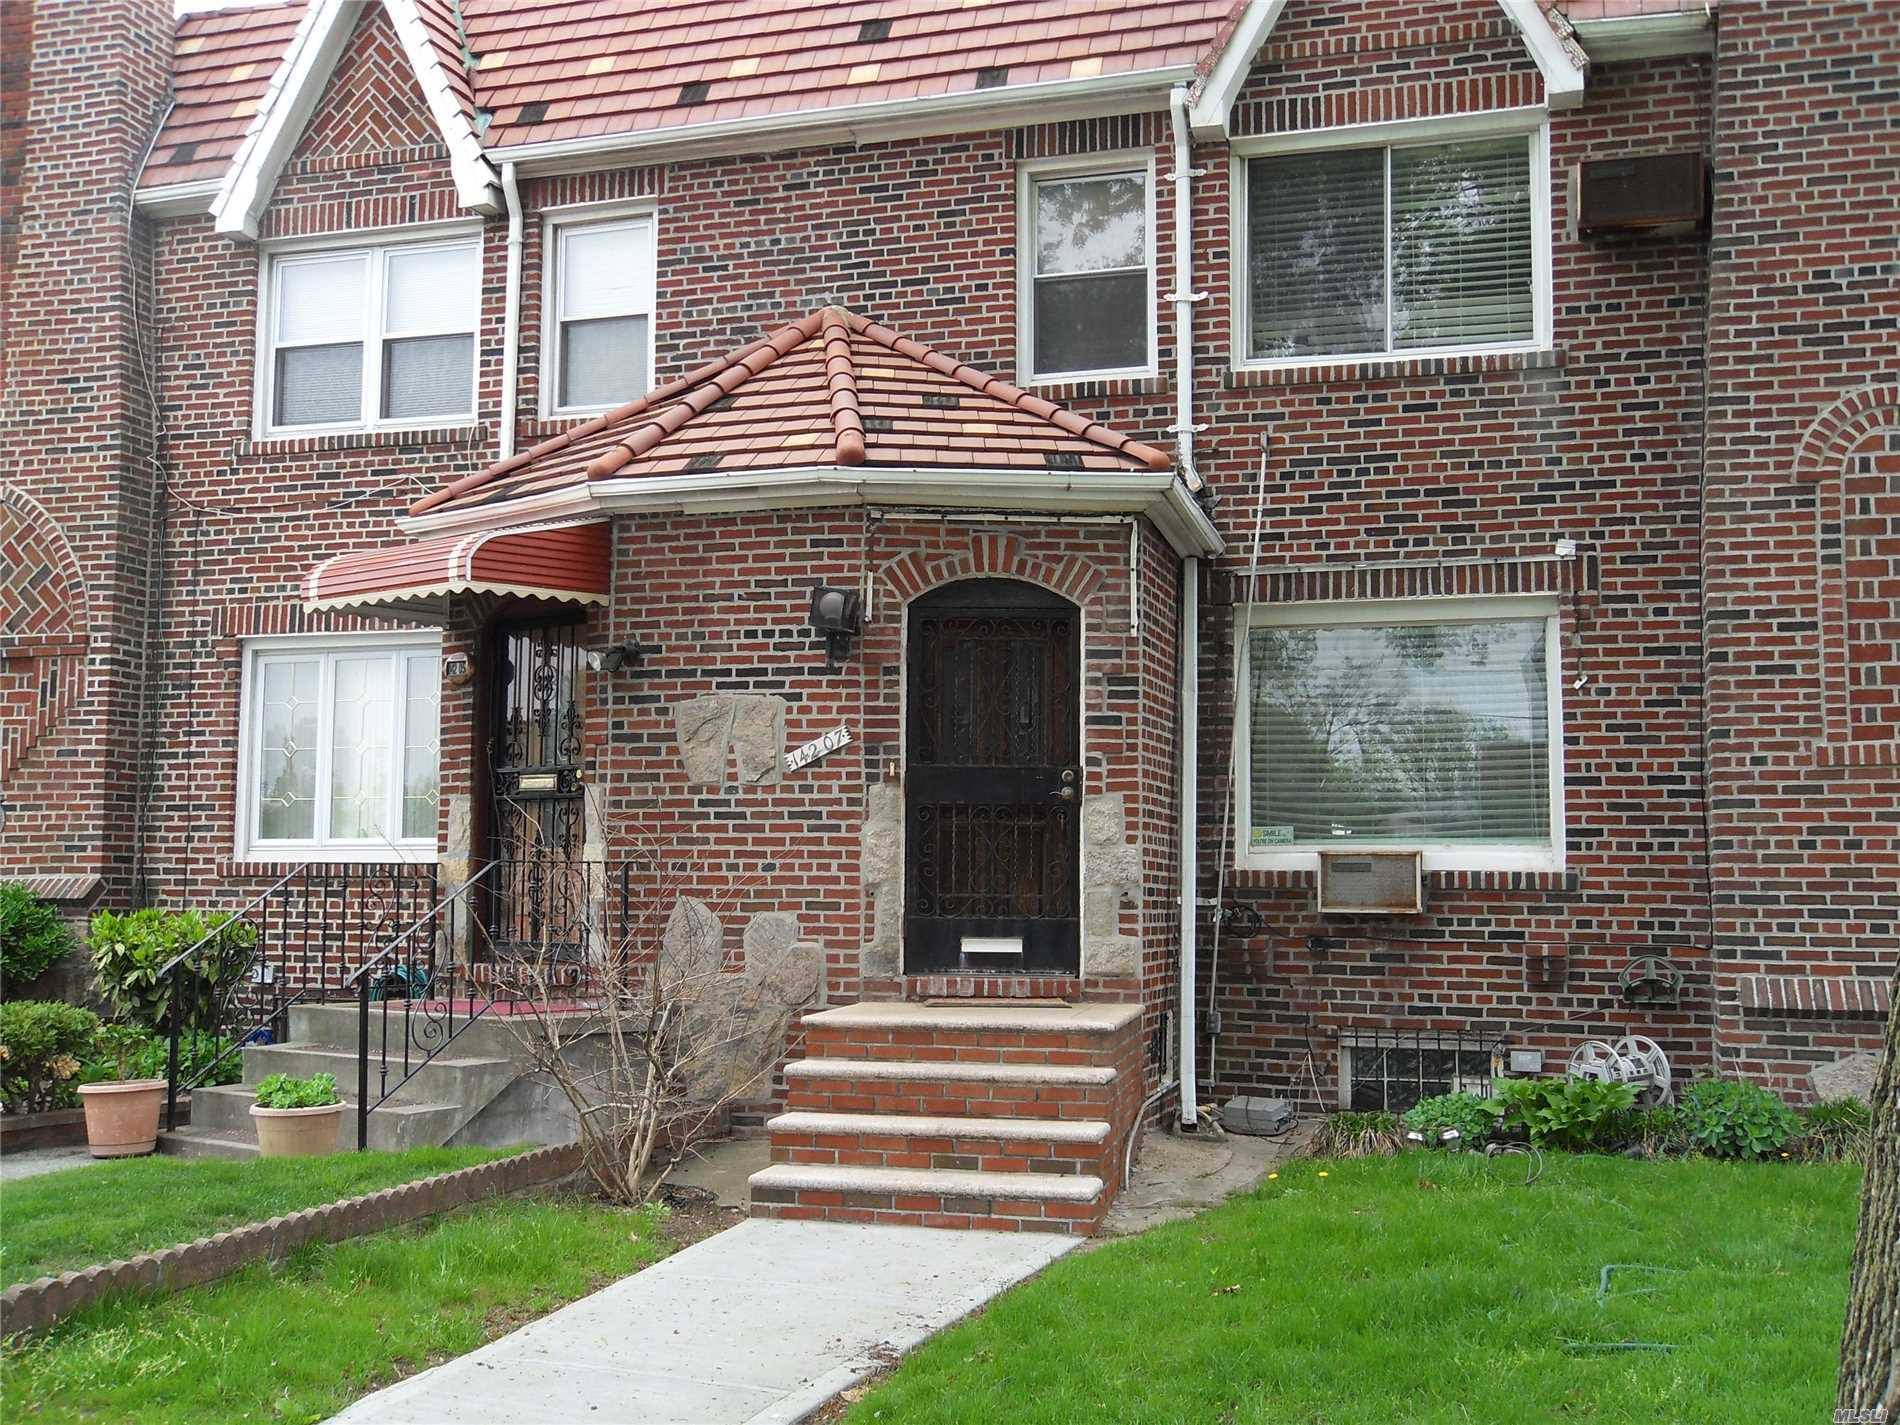 3 Bedrooms, 1.5 Bathrooms. Full Basement With Separate Entrance. Garage And Driveway In Rear. On Laurelton/Rosedale Border. Near Public Transportation, Highway And Green Acres Shopping Mall  Move In Condition